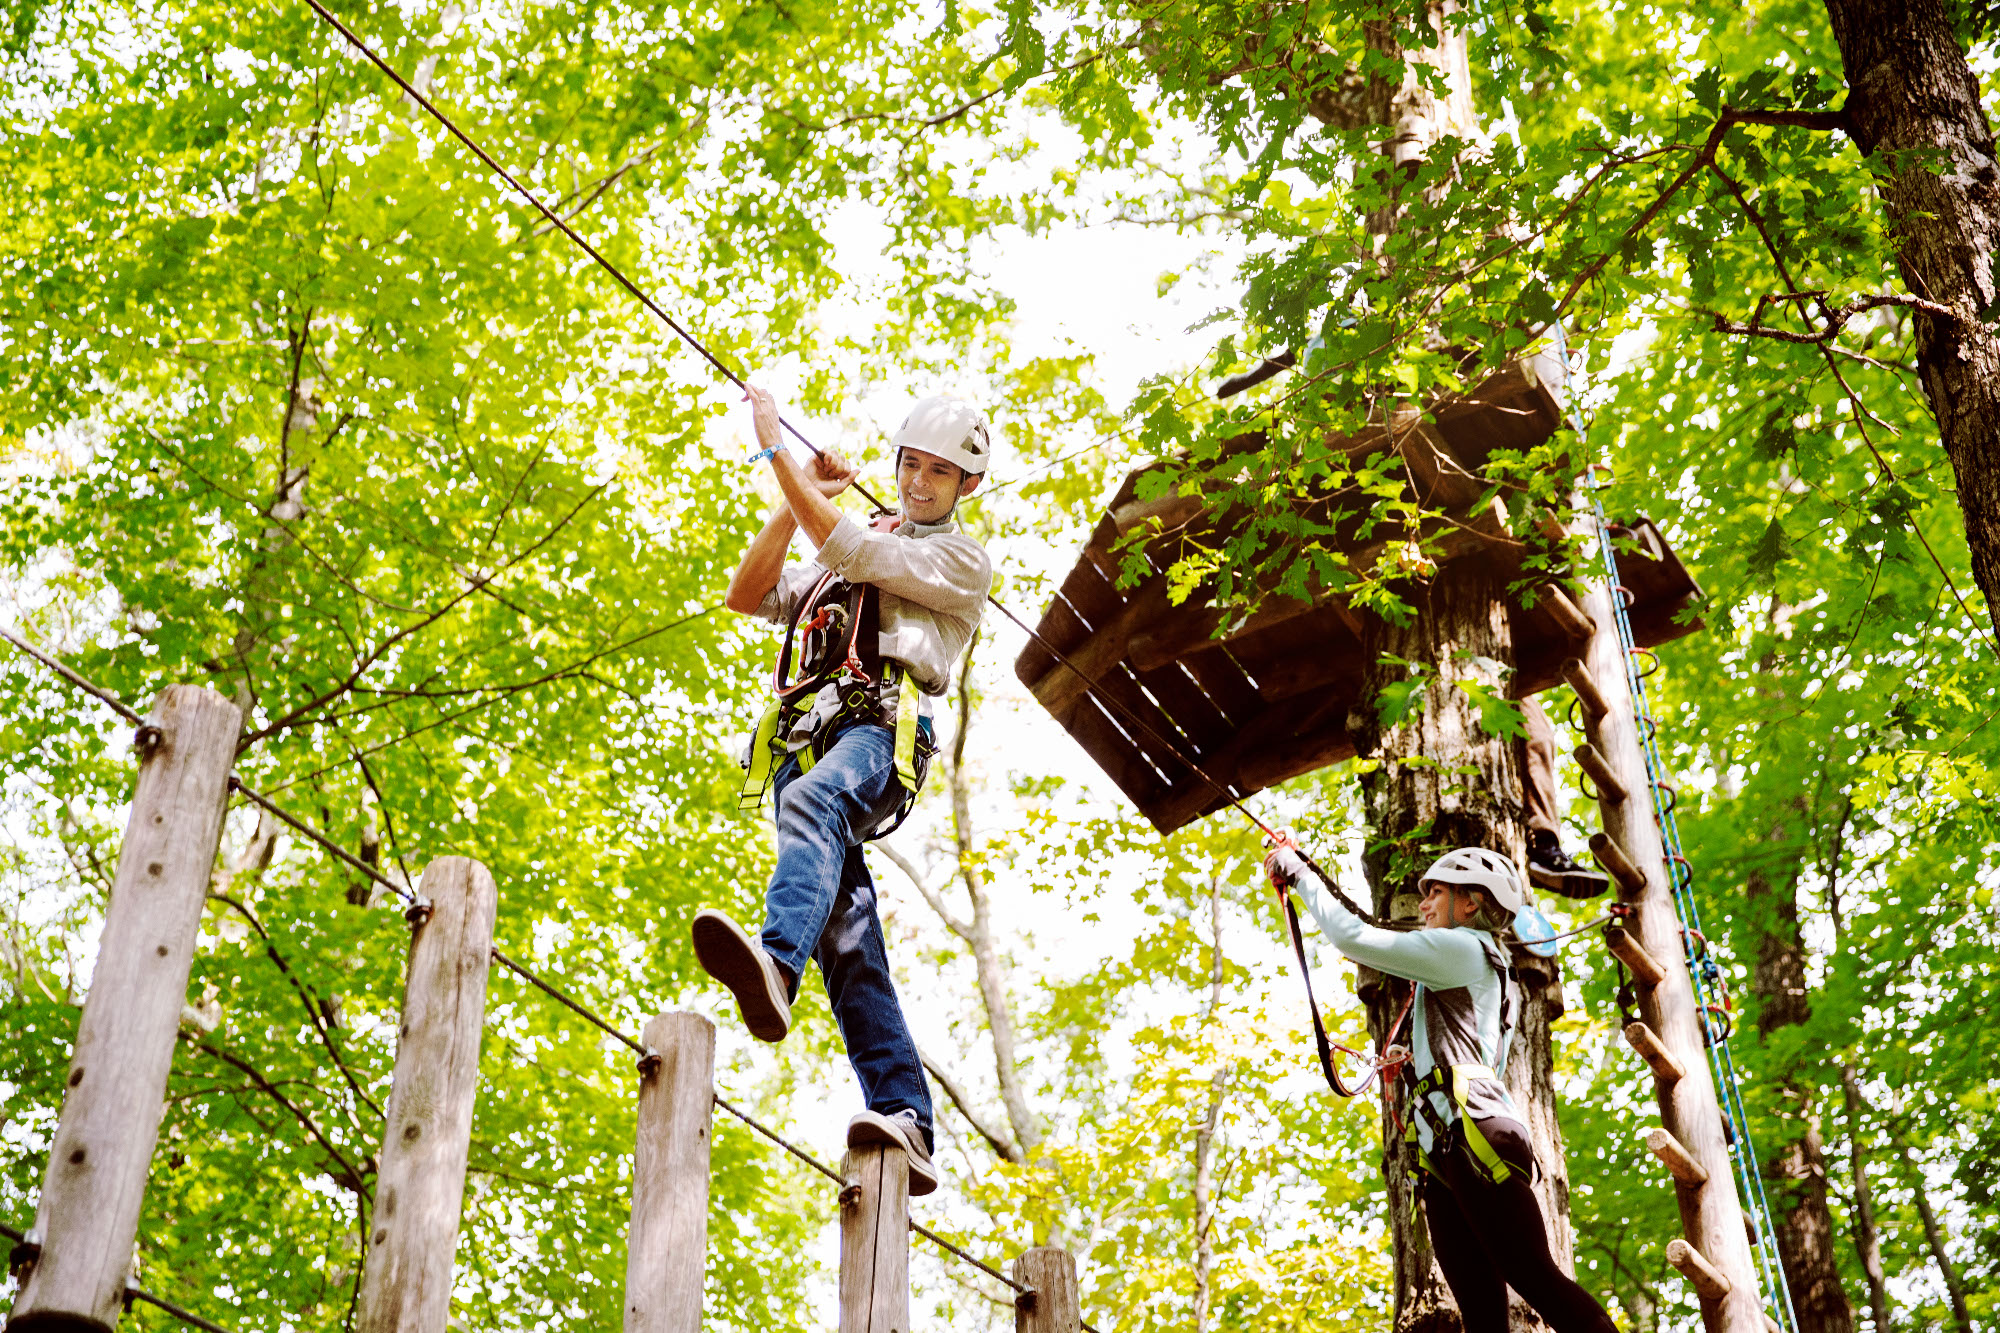 Treetops Rope Course